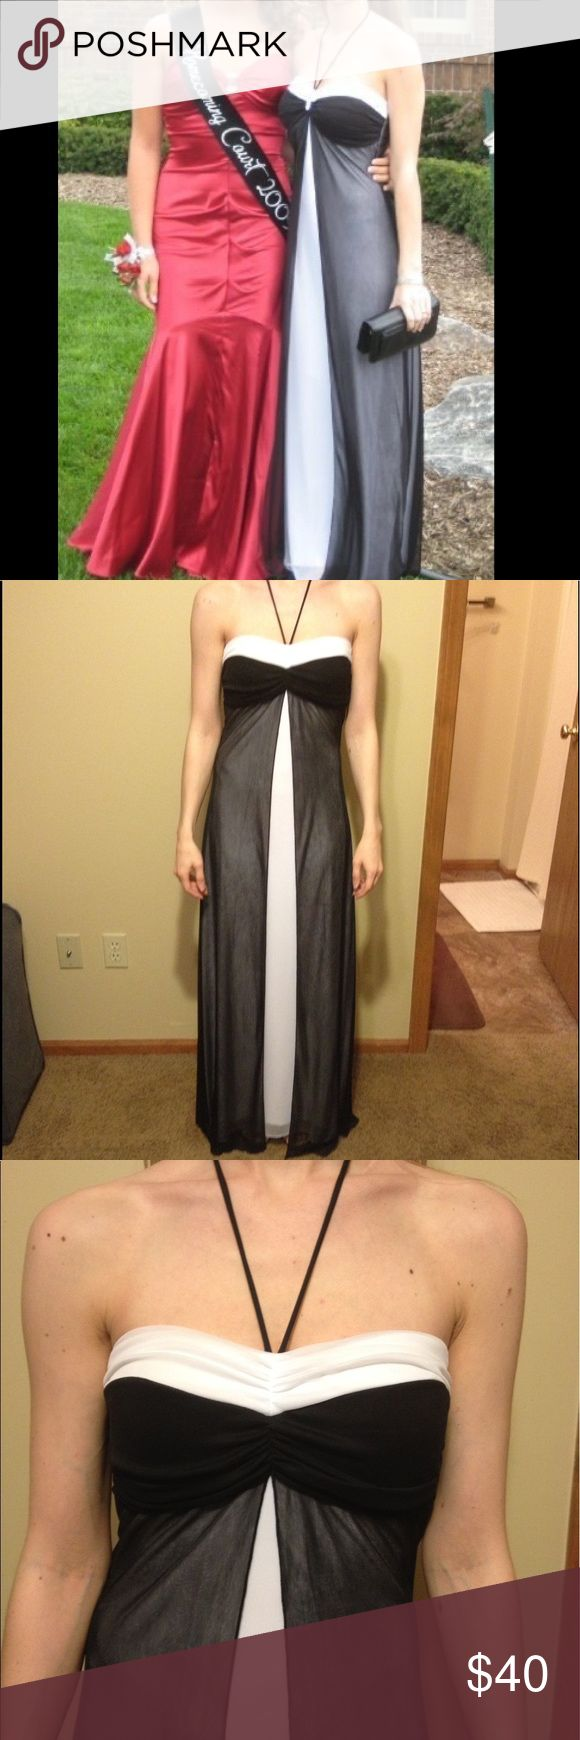 "Classic Black & White Panel Prom Dress Sz:5/6 Classic Black & White Panel A-Line Prom Dress Sz:5/6. This does have a few flaws where the material has some pilling. The first is on the right mid-thigh but is covered up by the black panel as seen in photo. The second is near the hem-so not very noticeable. This is a halter neck. No zipper but an elastic bust. (100% polyester) machine wash cold. Length from top of bust to bottom hem-50"". Waist-12.5"" across. Bust-13.5"" across. Taboo Dresses Prom"